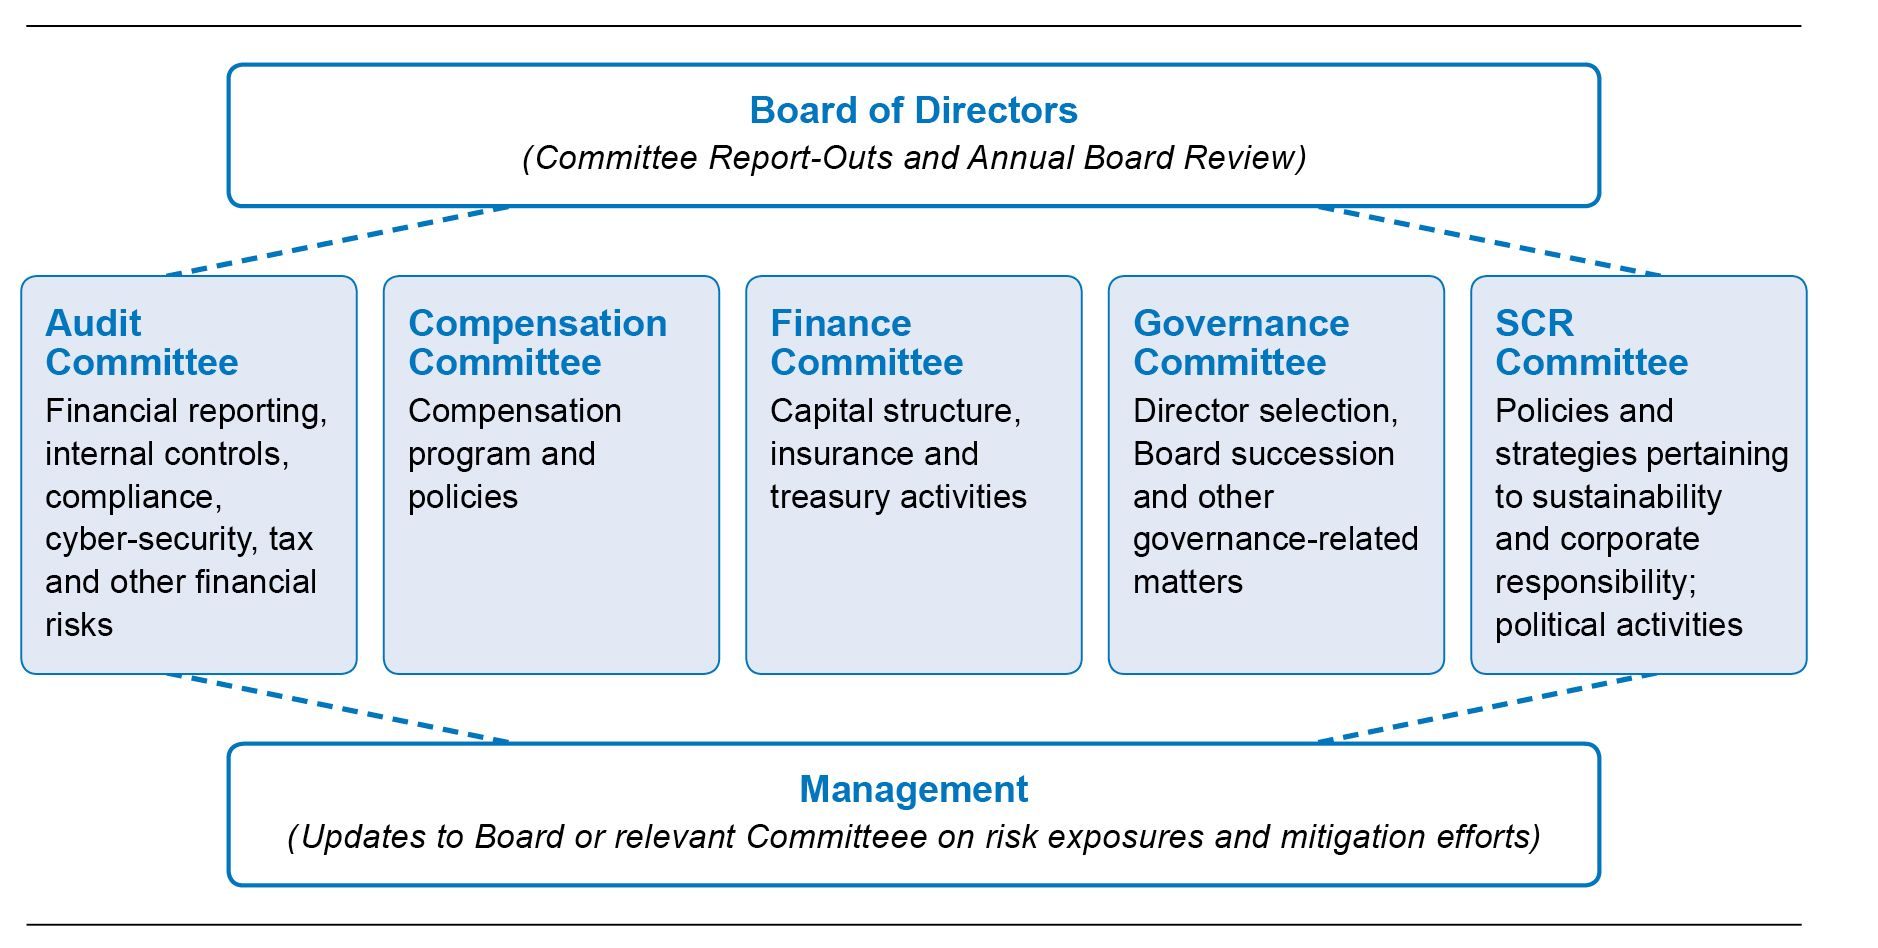 Related image Internal control, Finance